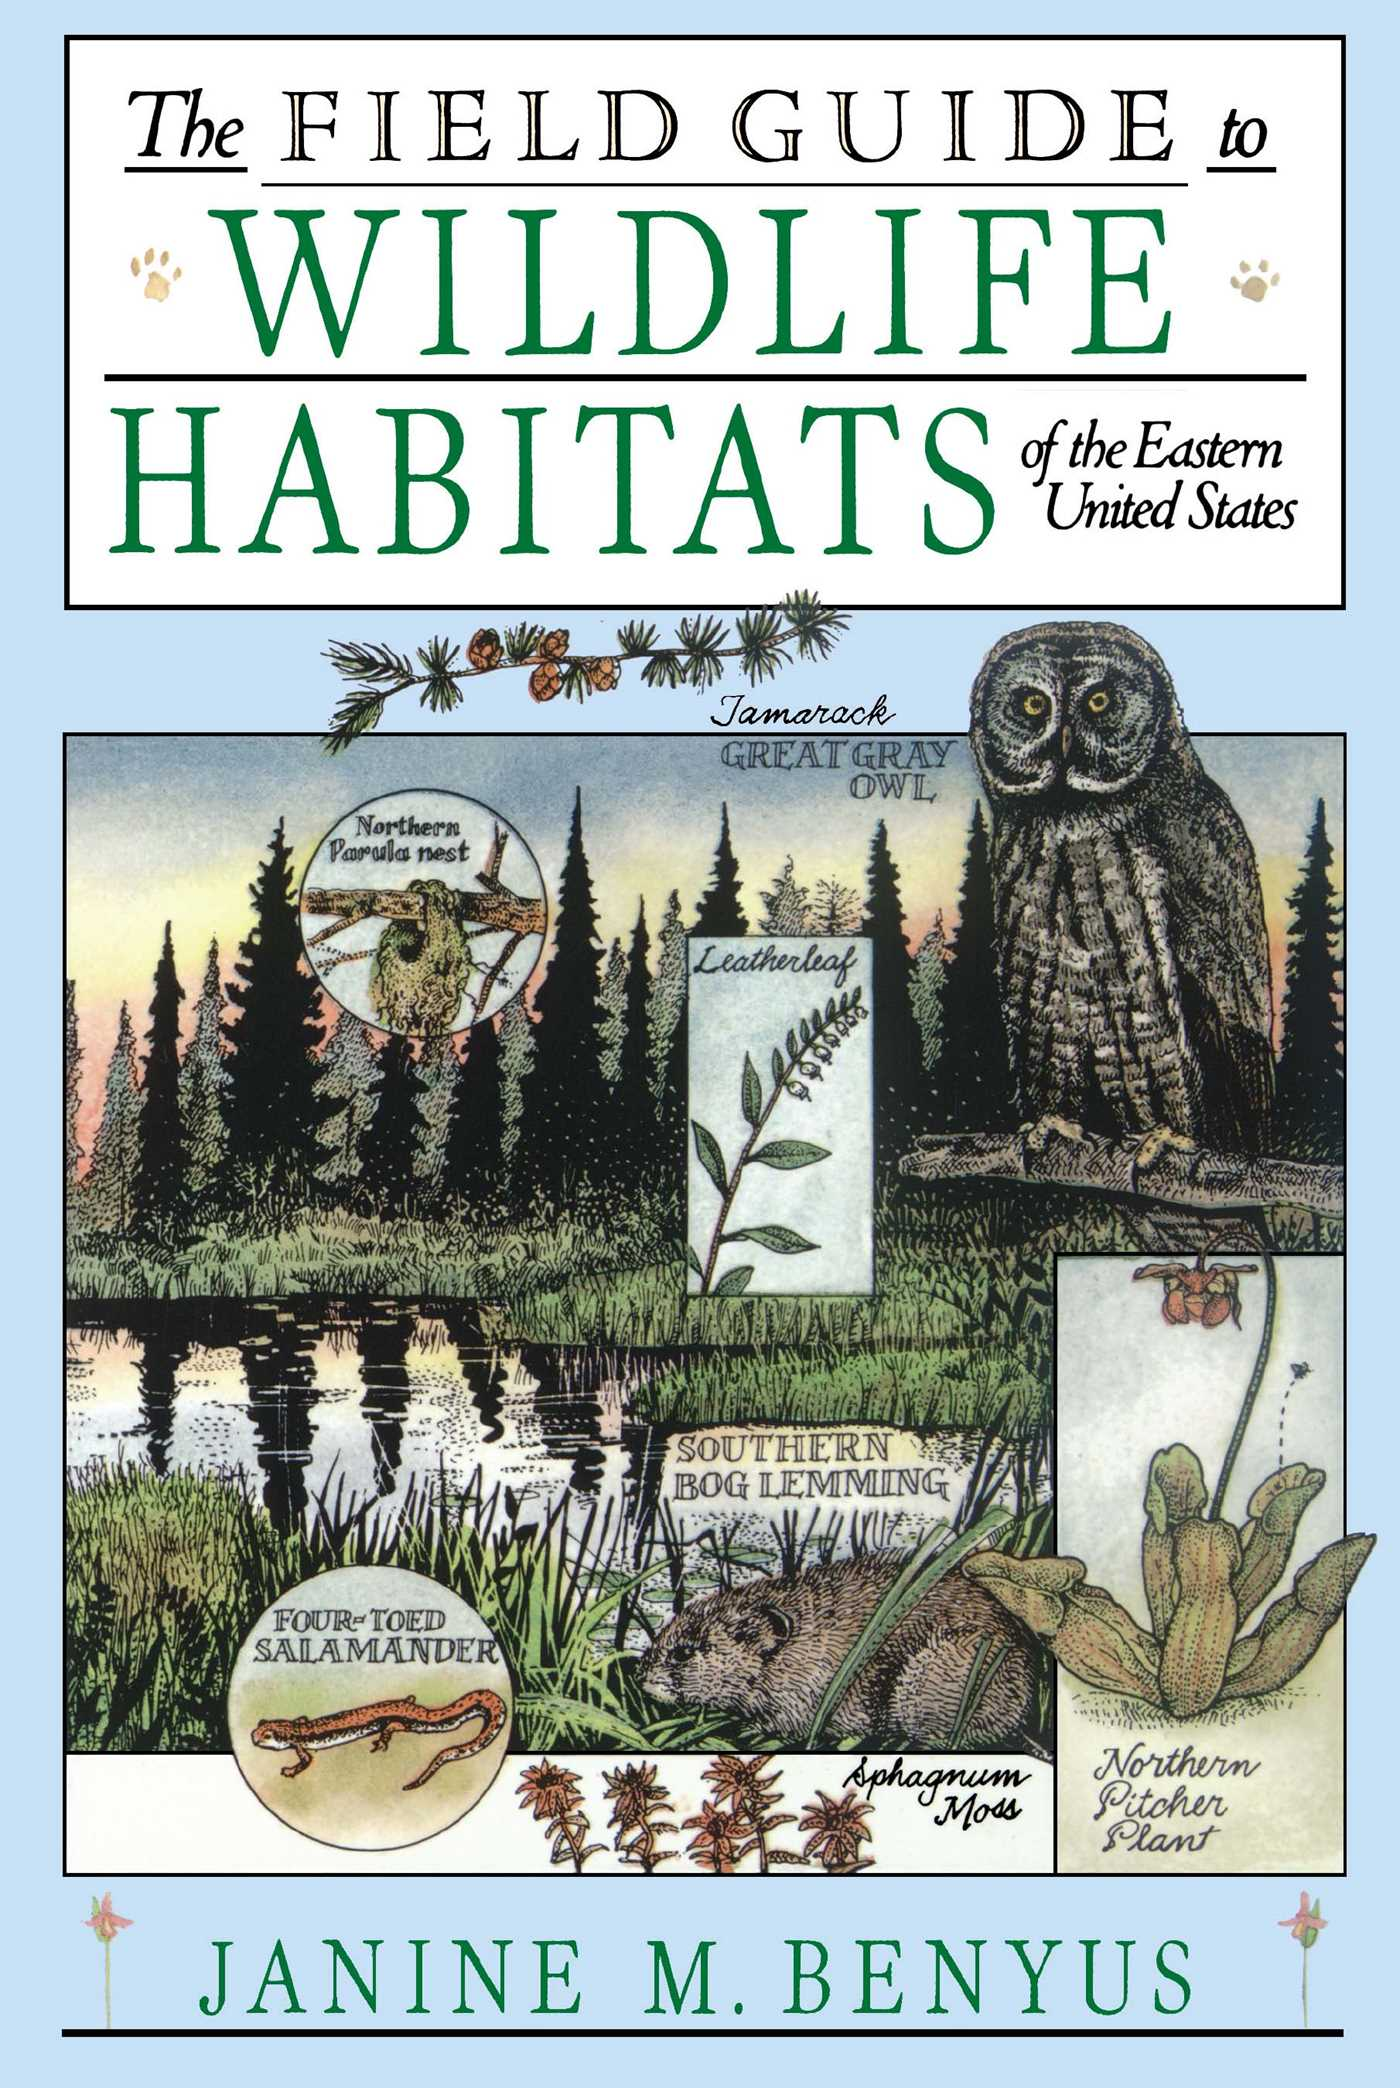 The-field-guide-to-wildlife-habitats-of-the-eastern-united-states-9780671659080_hr